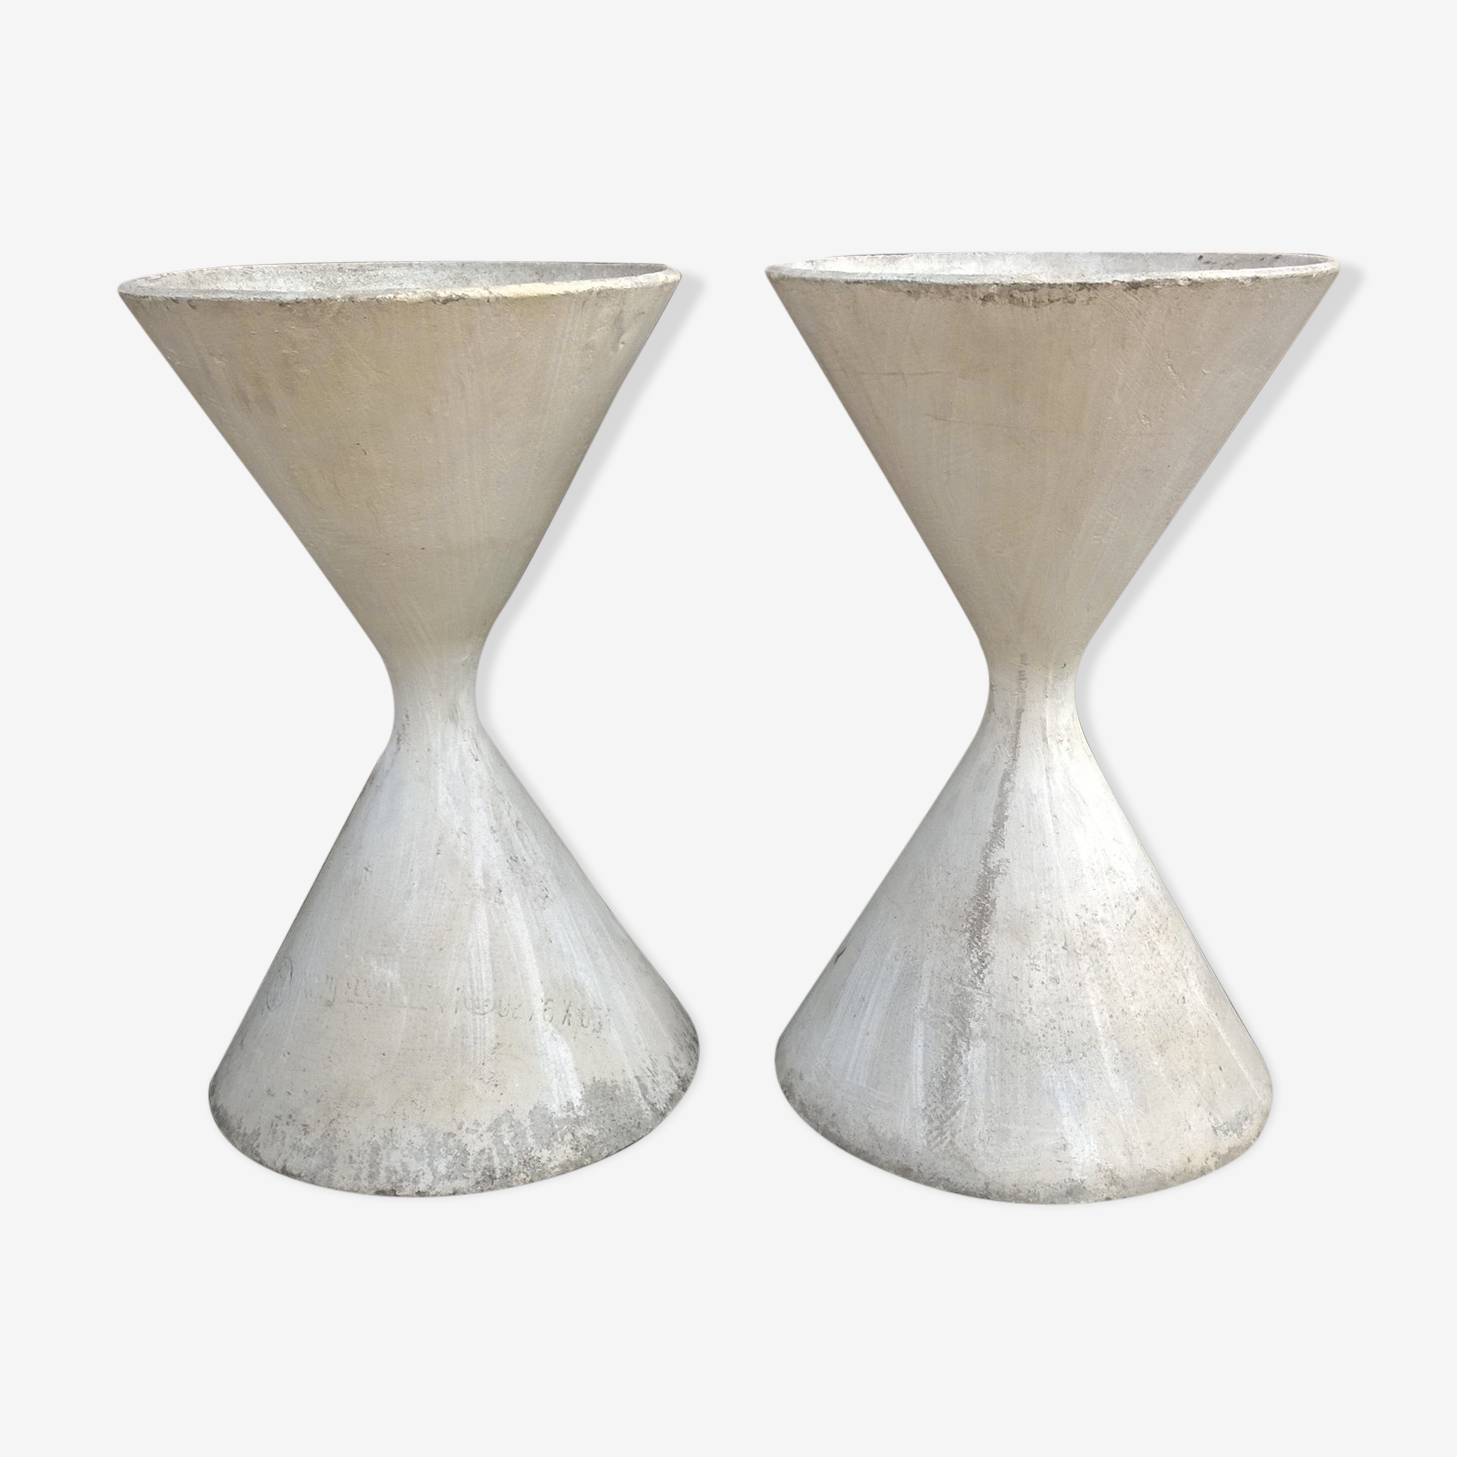 Diabolo planters Anton Bee and Willy Guhl for Eternit, created 195